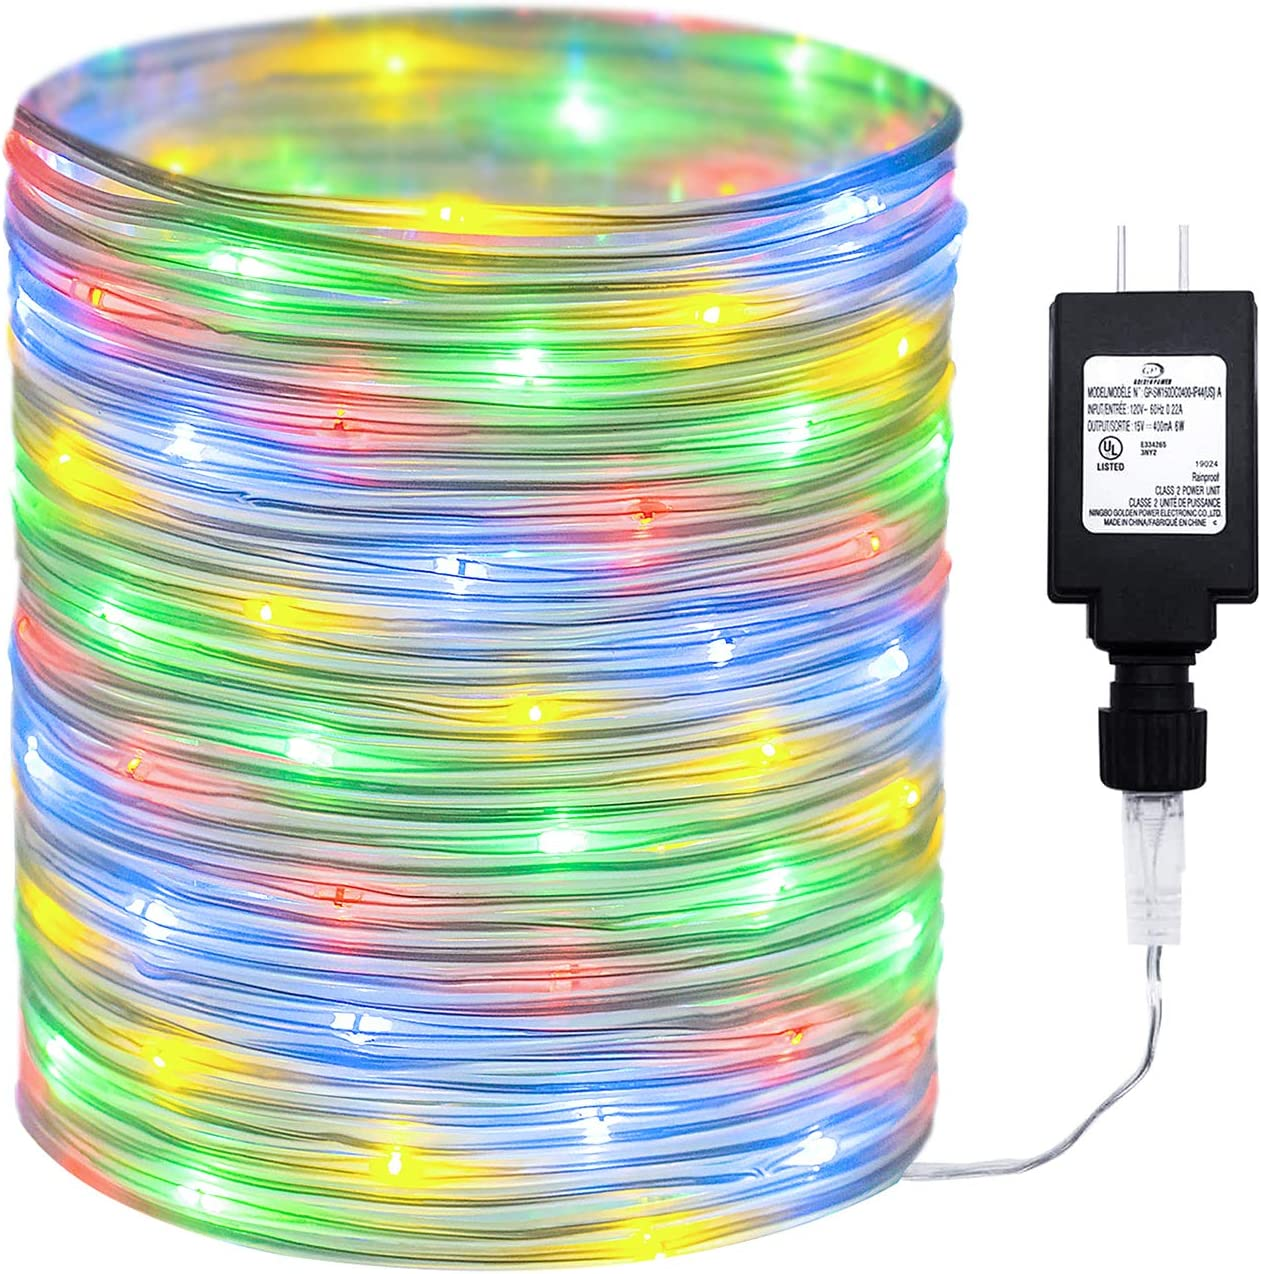 Amazon Com 98ft Outdoor Led Rope Lights String With 300 Leds Waterproof Decoration Starry Fairy Lights Plug In For Bedroom Home Garden Patio Decor 98ft Multi Home Improvement